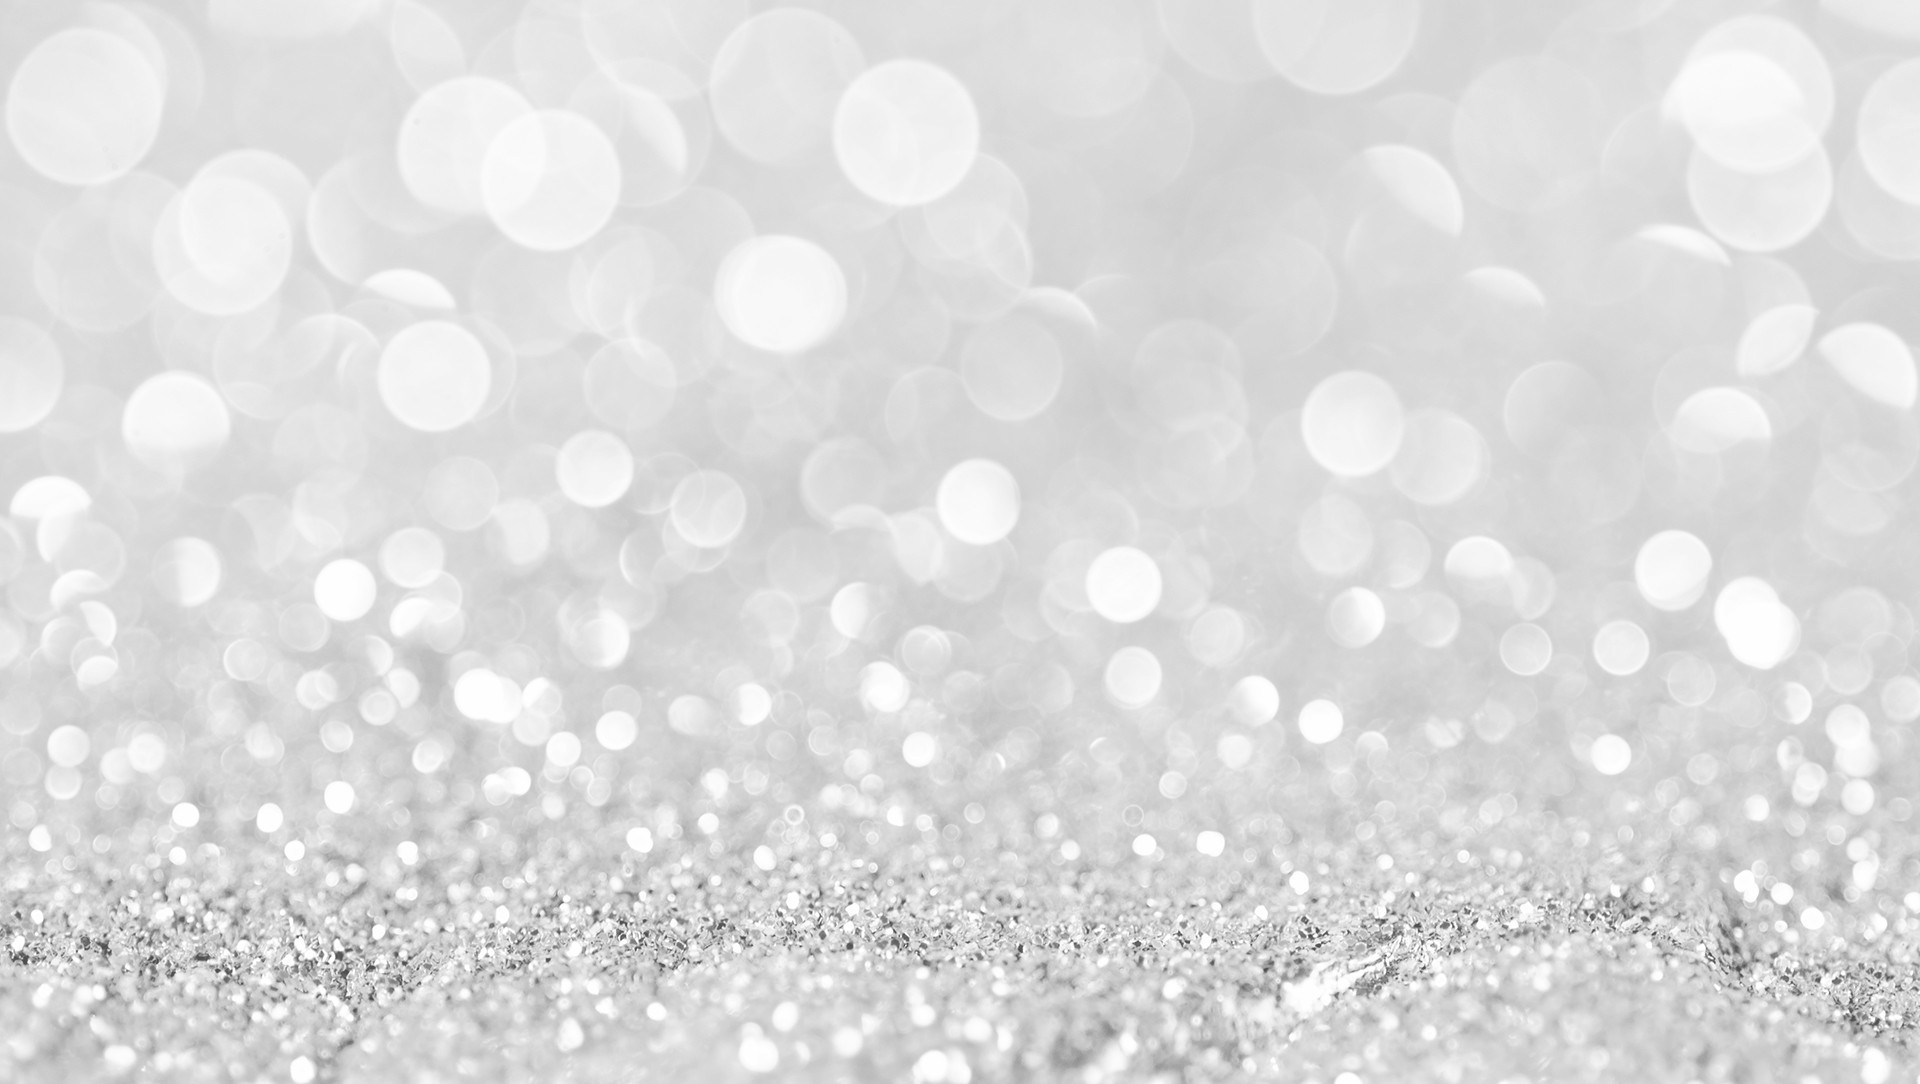 Res: 1920x1084, Silver Glitter Wallpaper HD Picture Live HD Wallpaper HQ Pictures free  powerpoint background